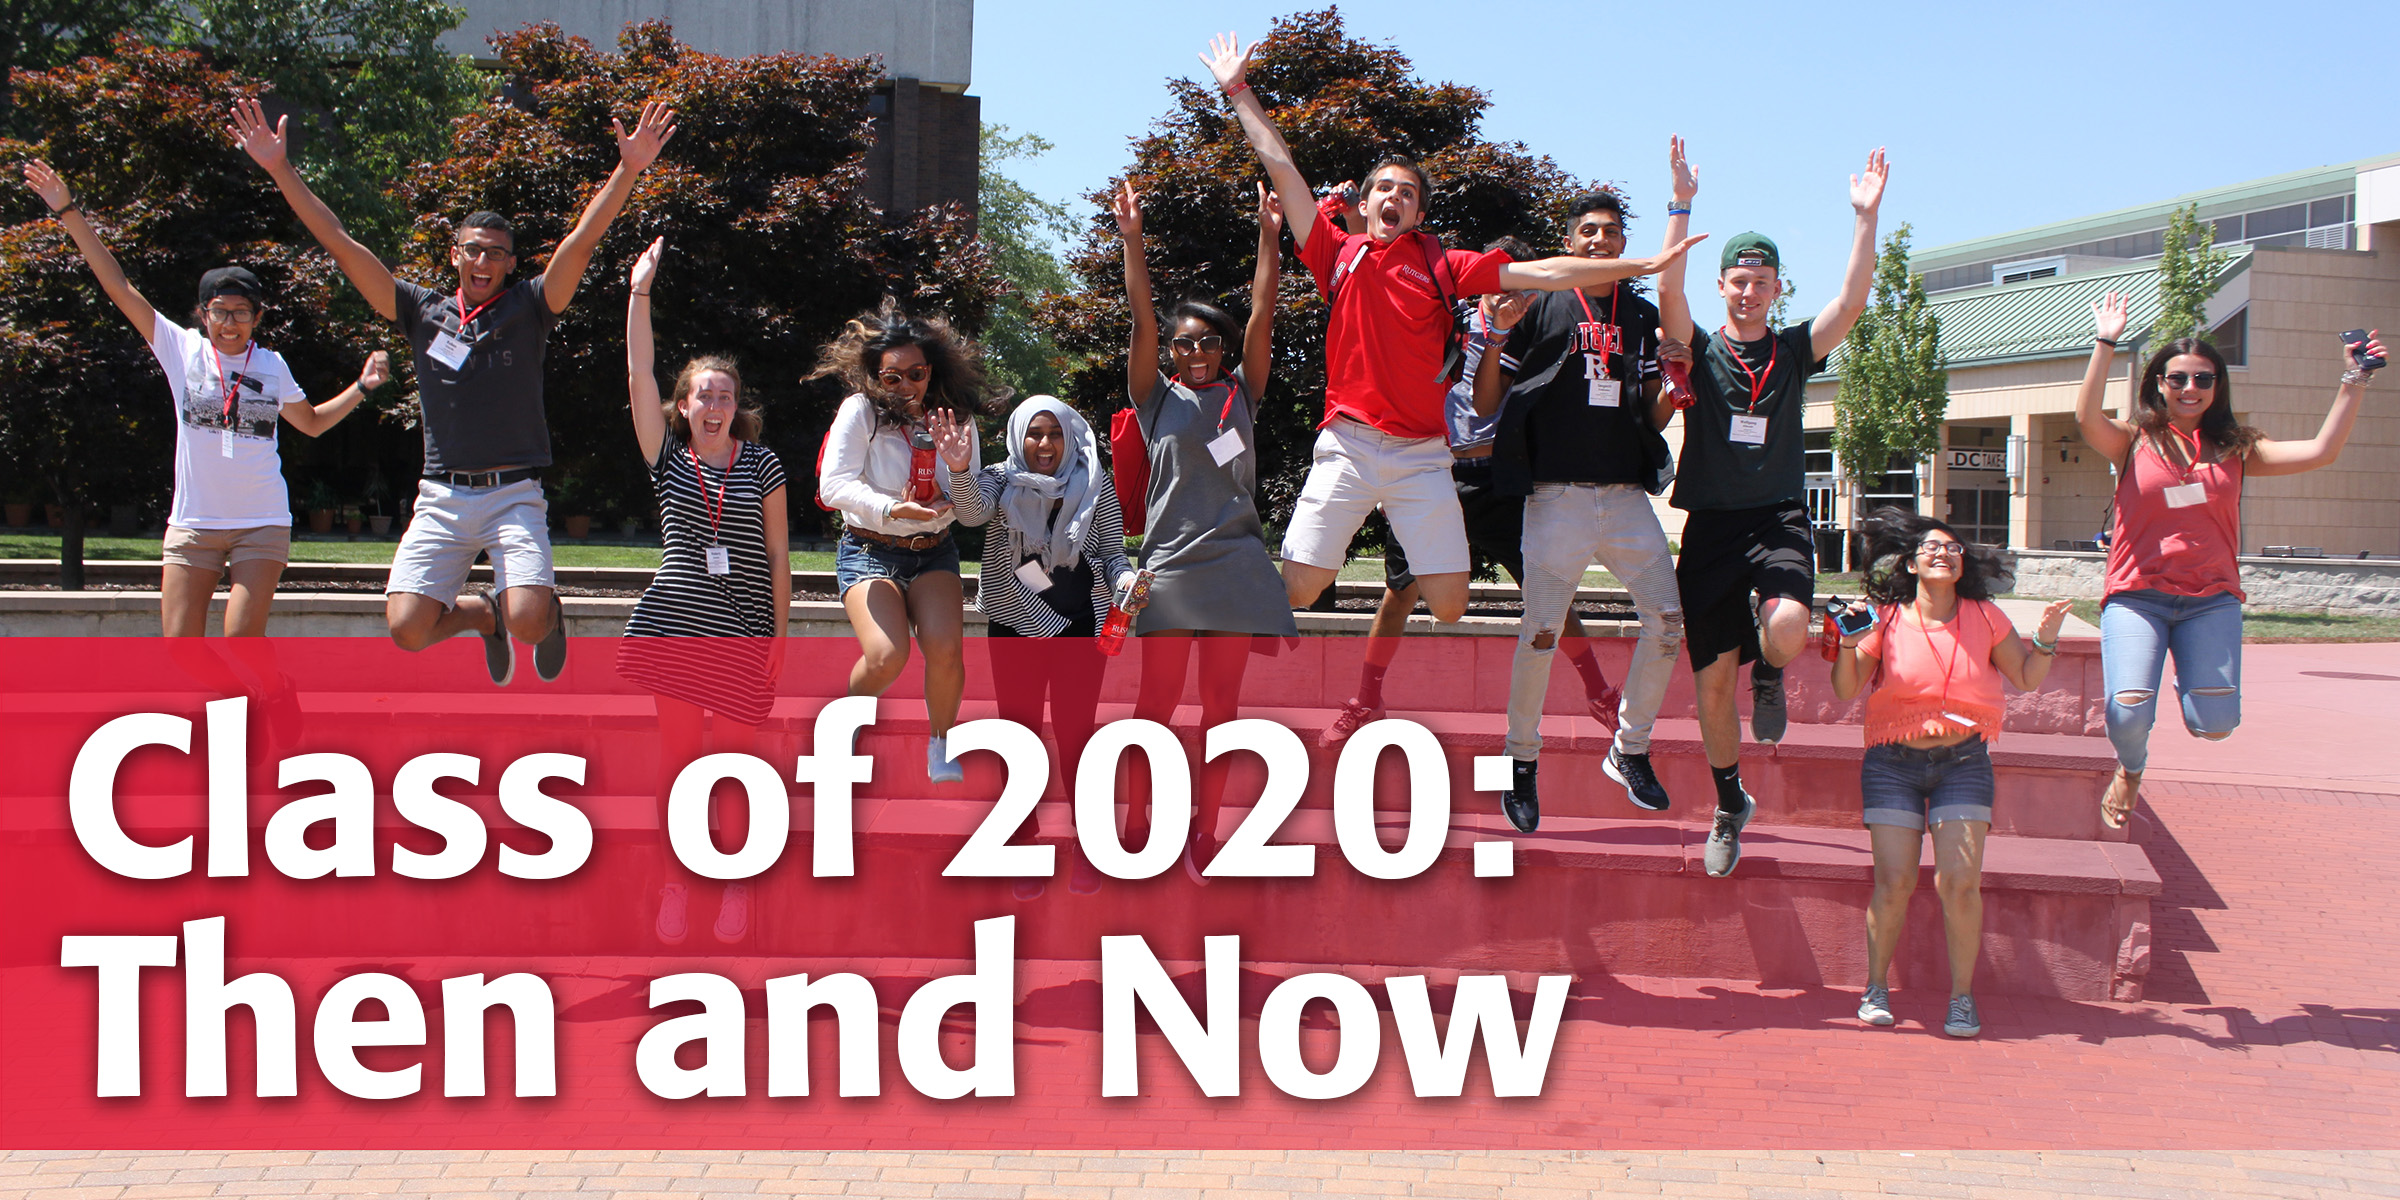 Class of 2020: Then and Now